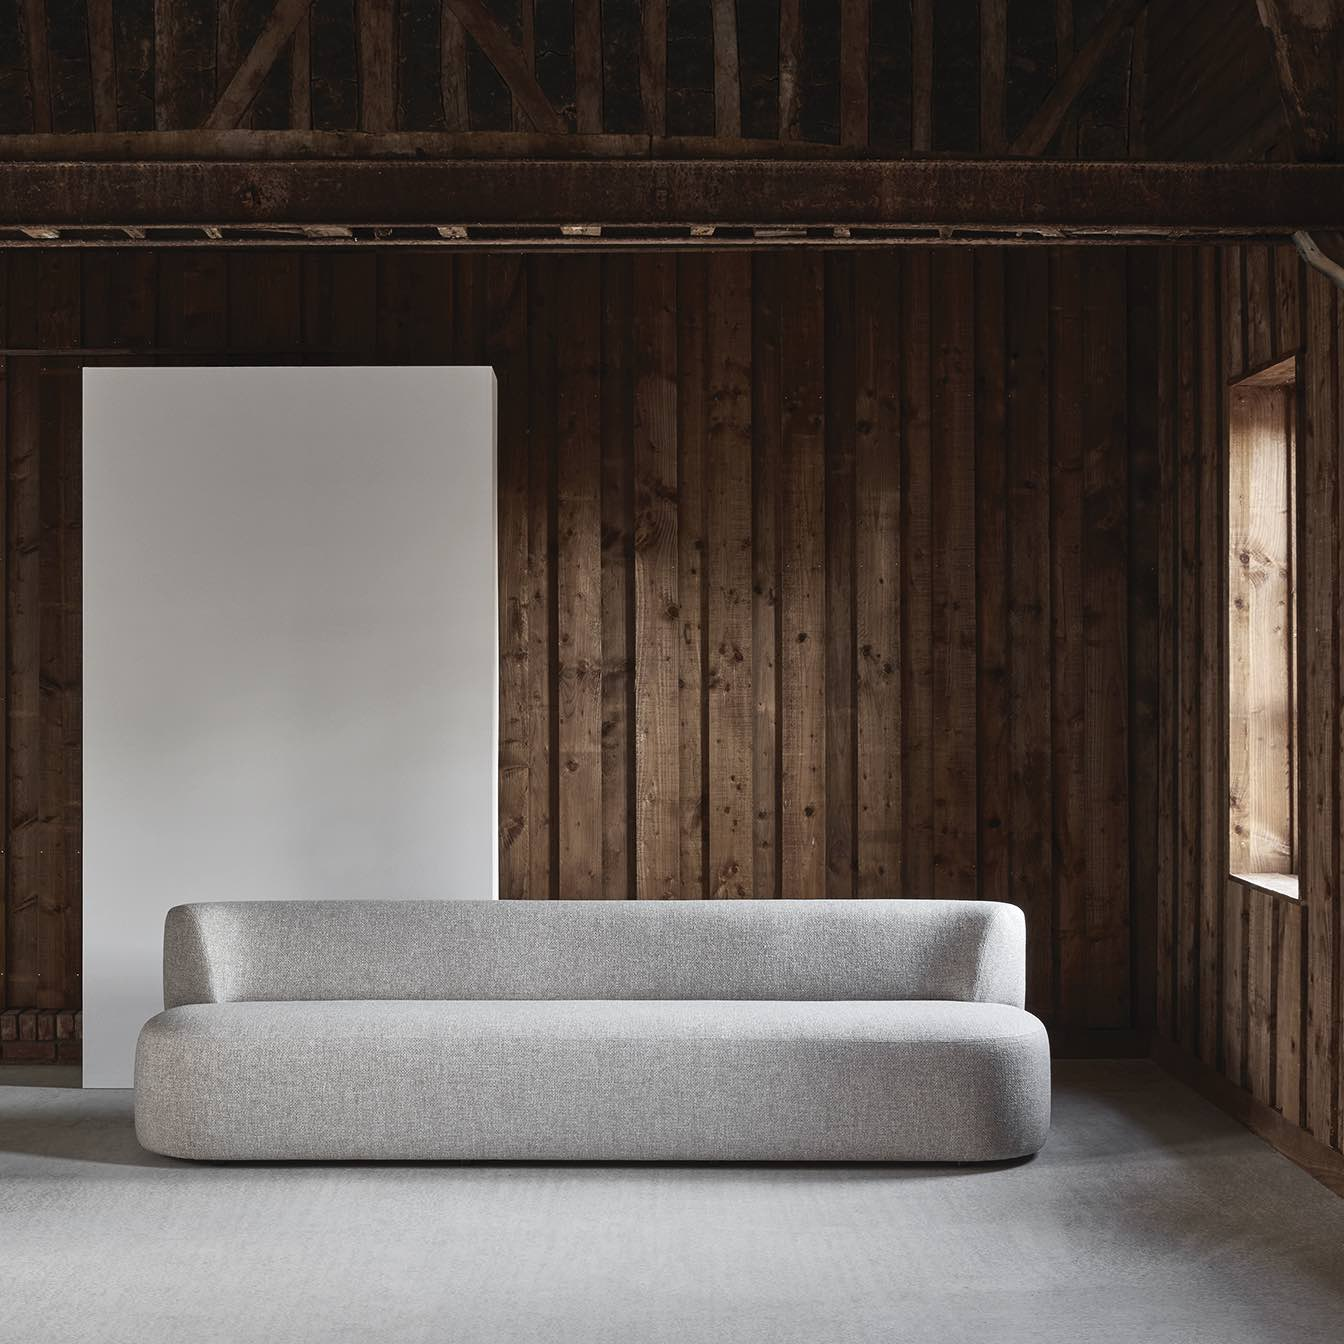 LEK-straight-sofa-christophe-delcourt-Collection-Particuliere